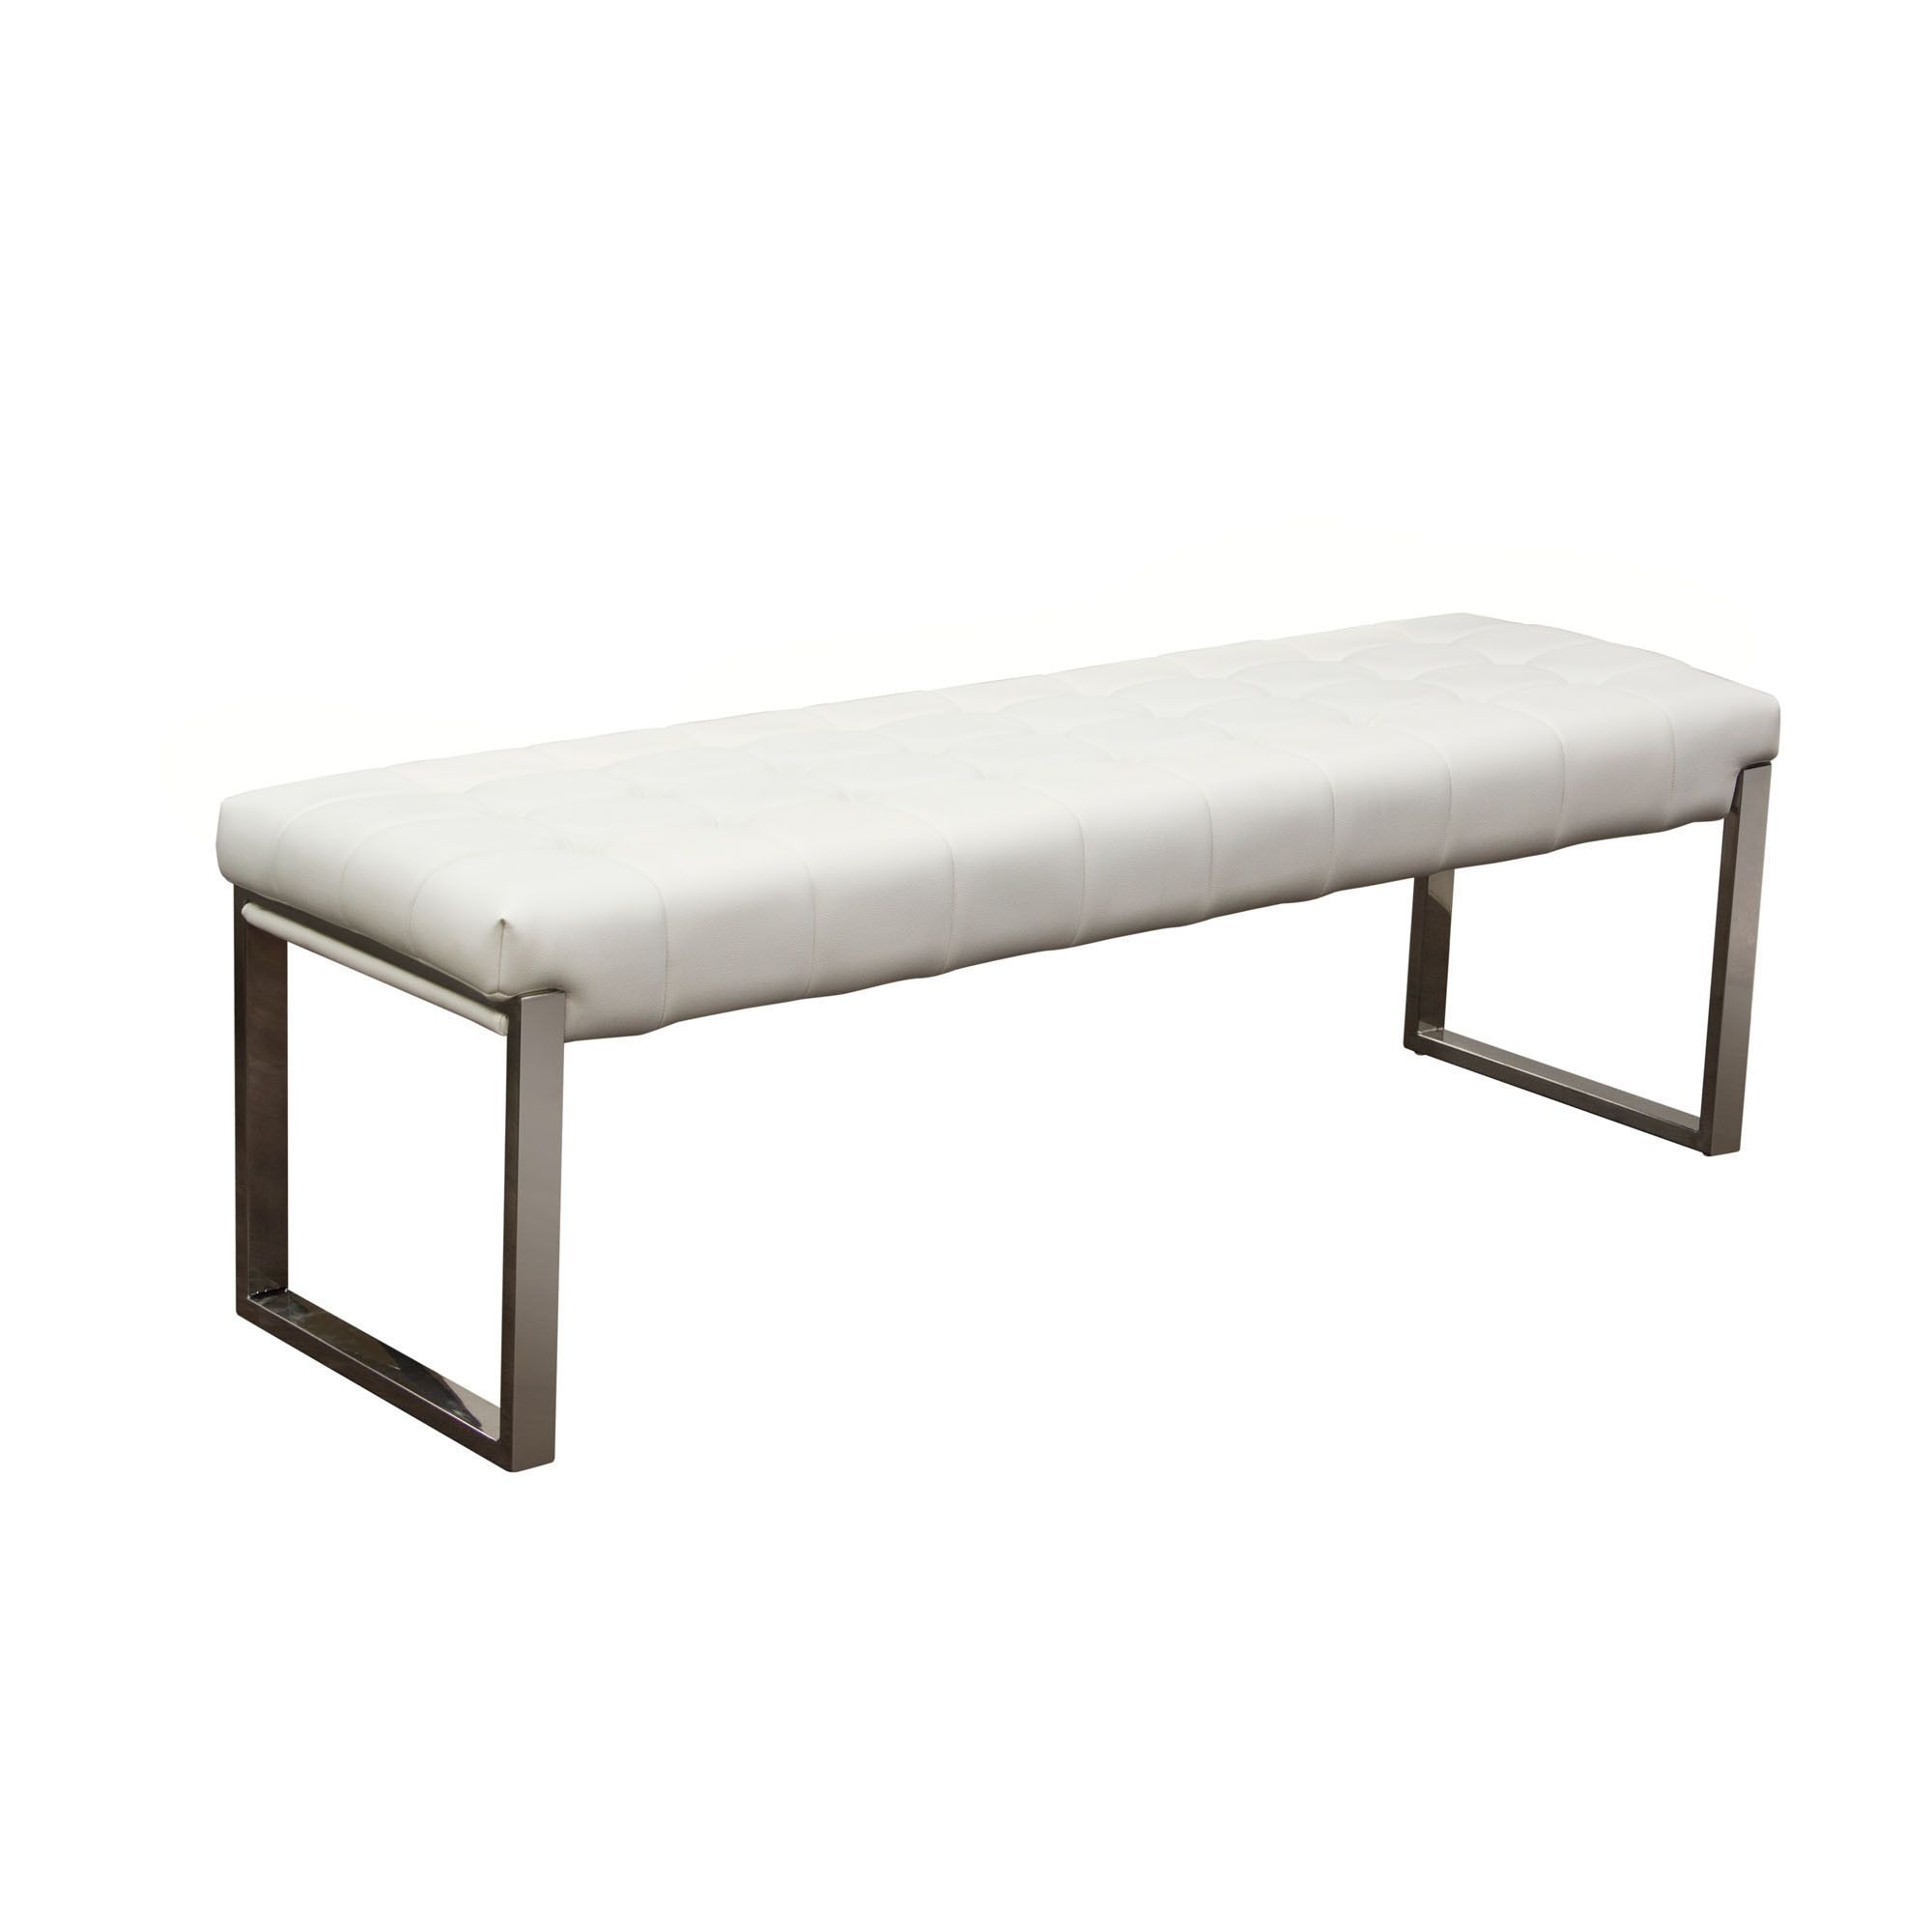 Backless Benches Indoor Part - 15: Knox Backless Tufted Bench In White Leatherette On Stainless Steel Frame